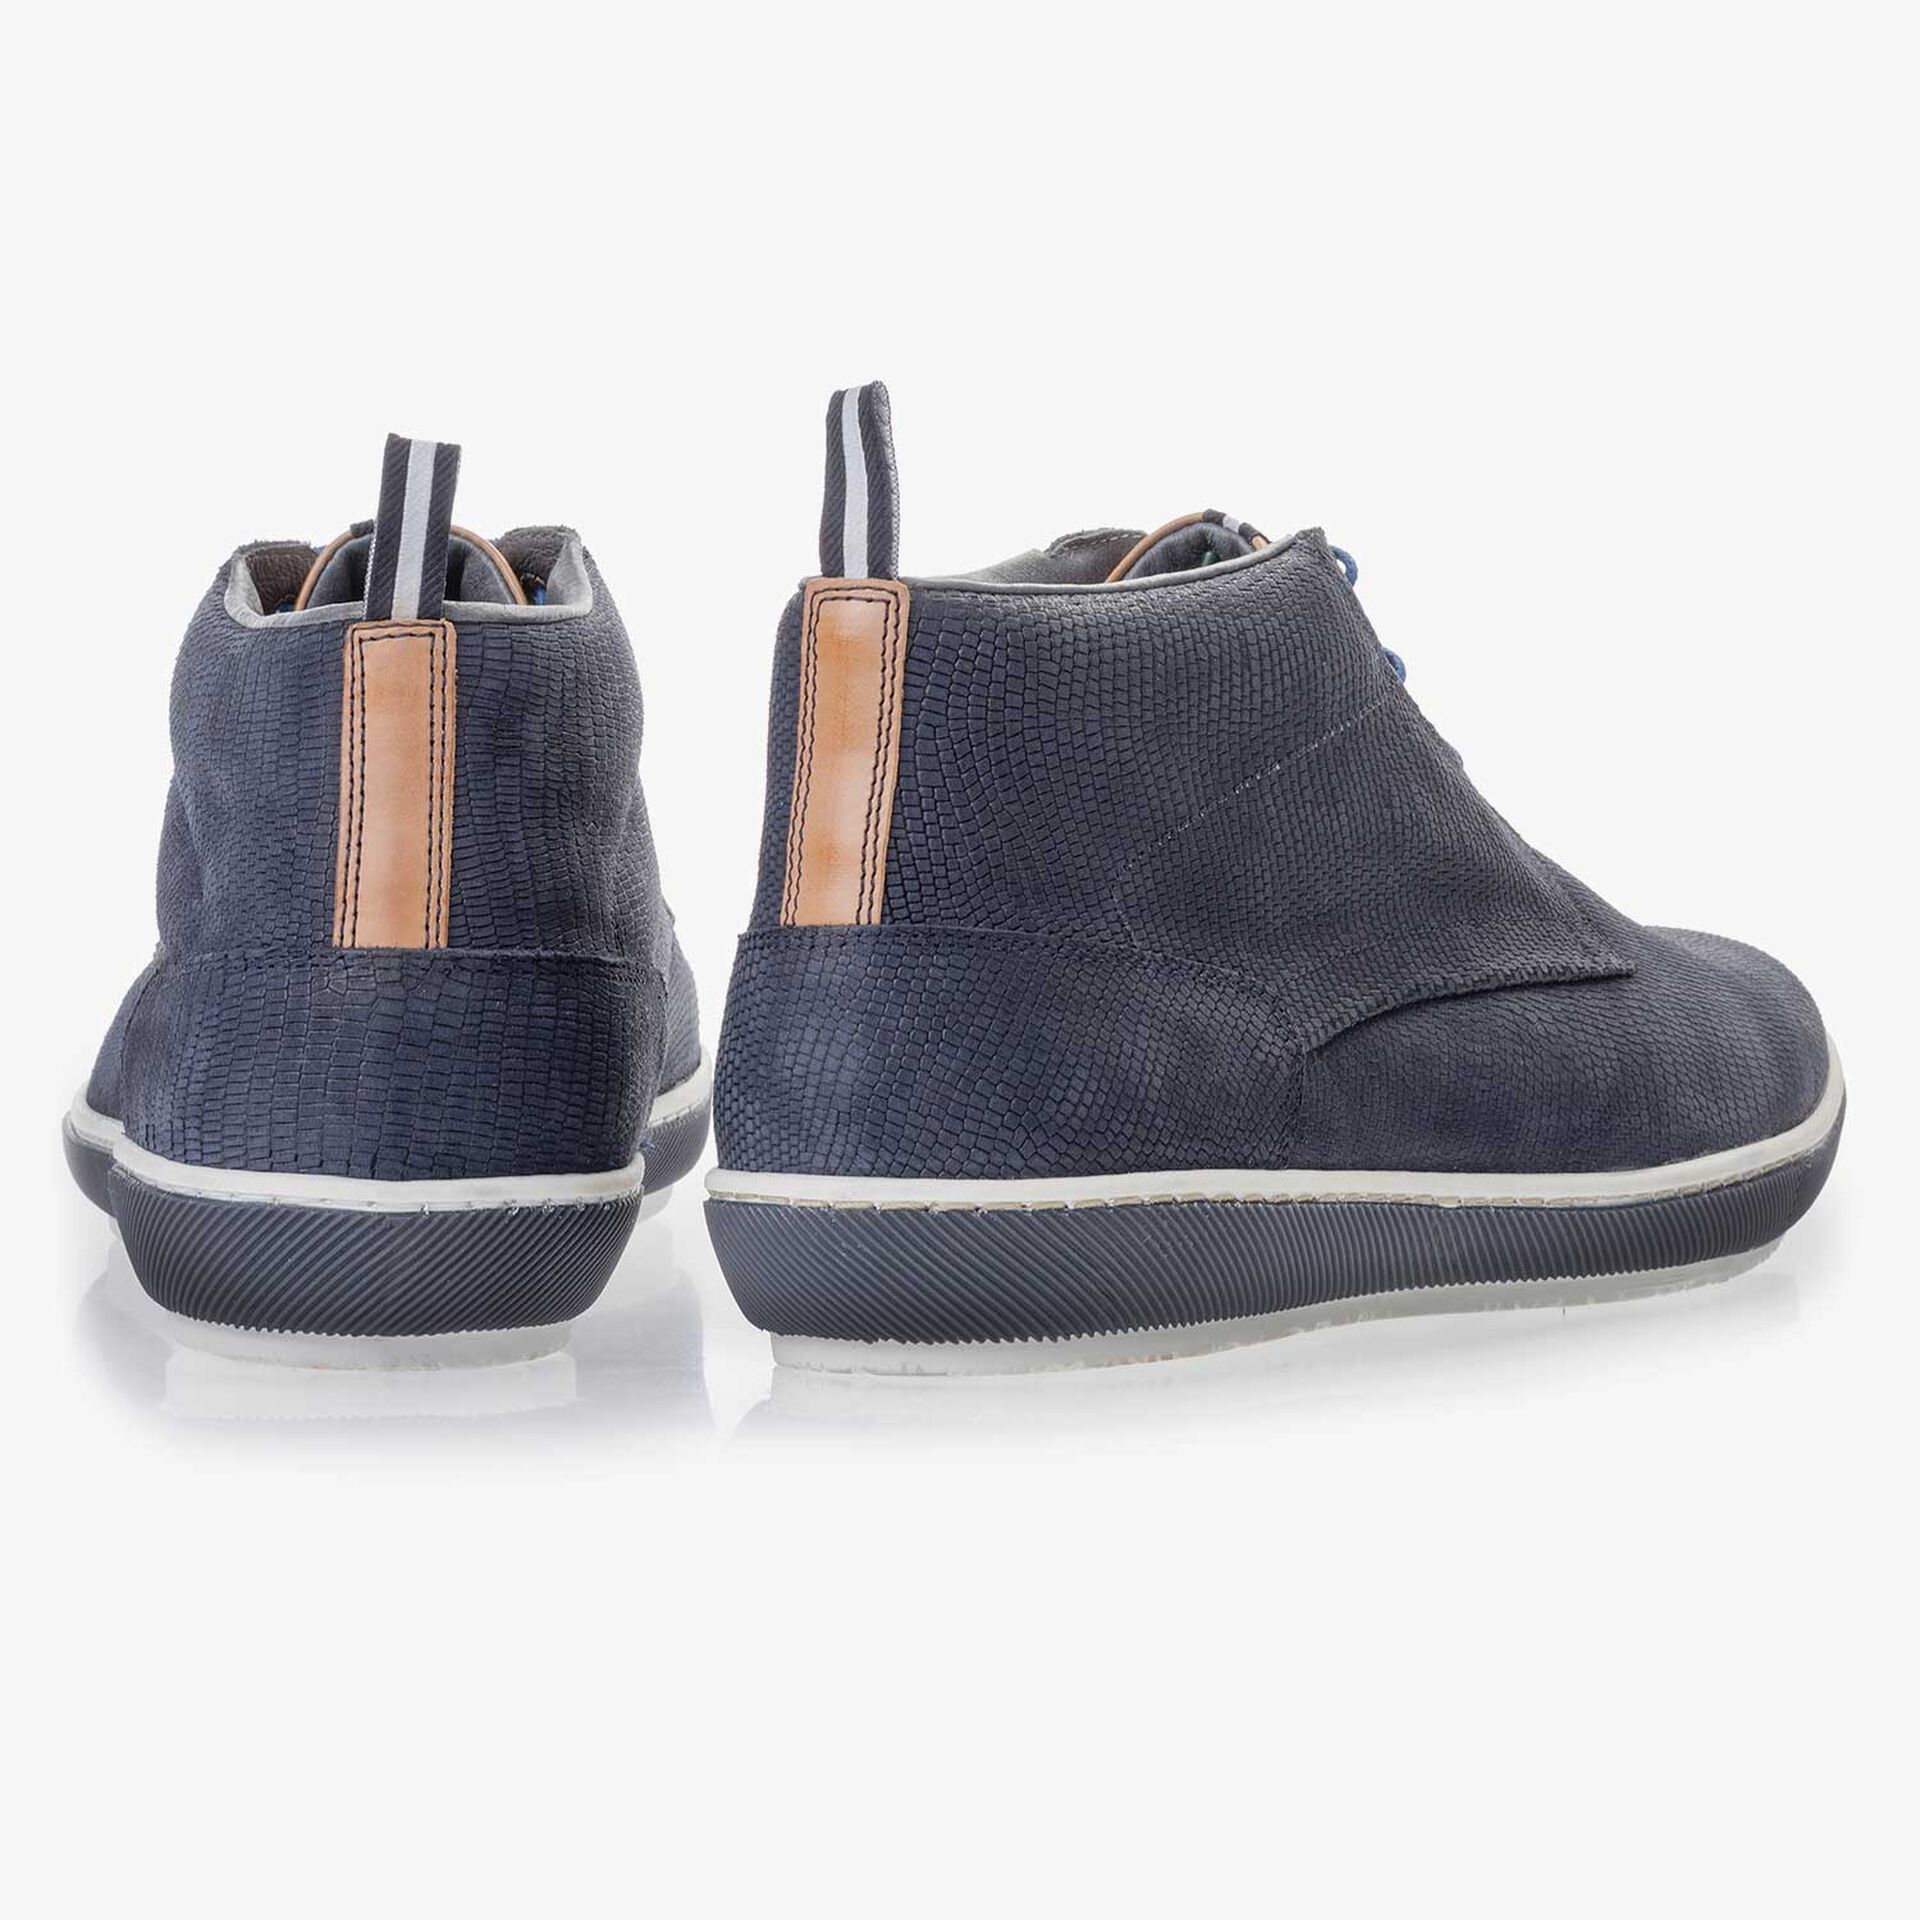 Blue, nubuck leather lace boot with pattern